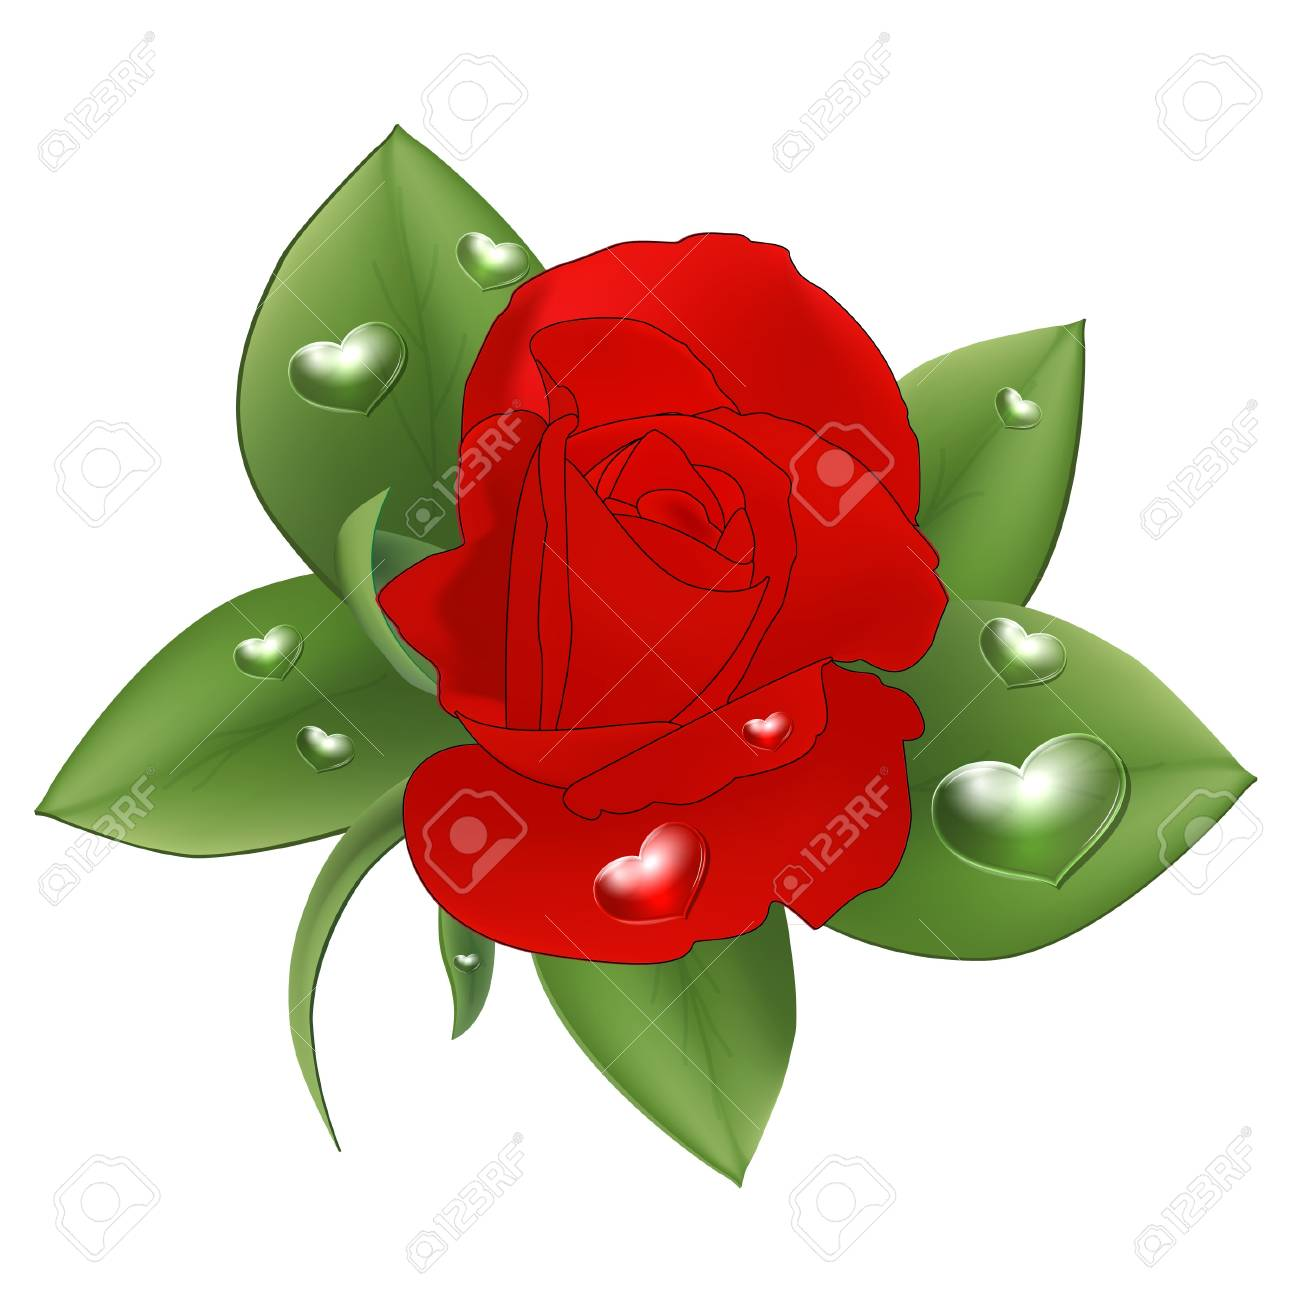 Red rose with drops in the form of heart on a white background. Stock Vector - 18134777